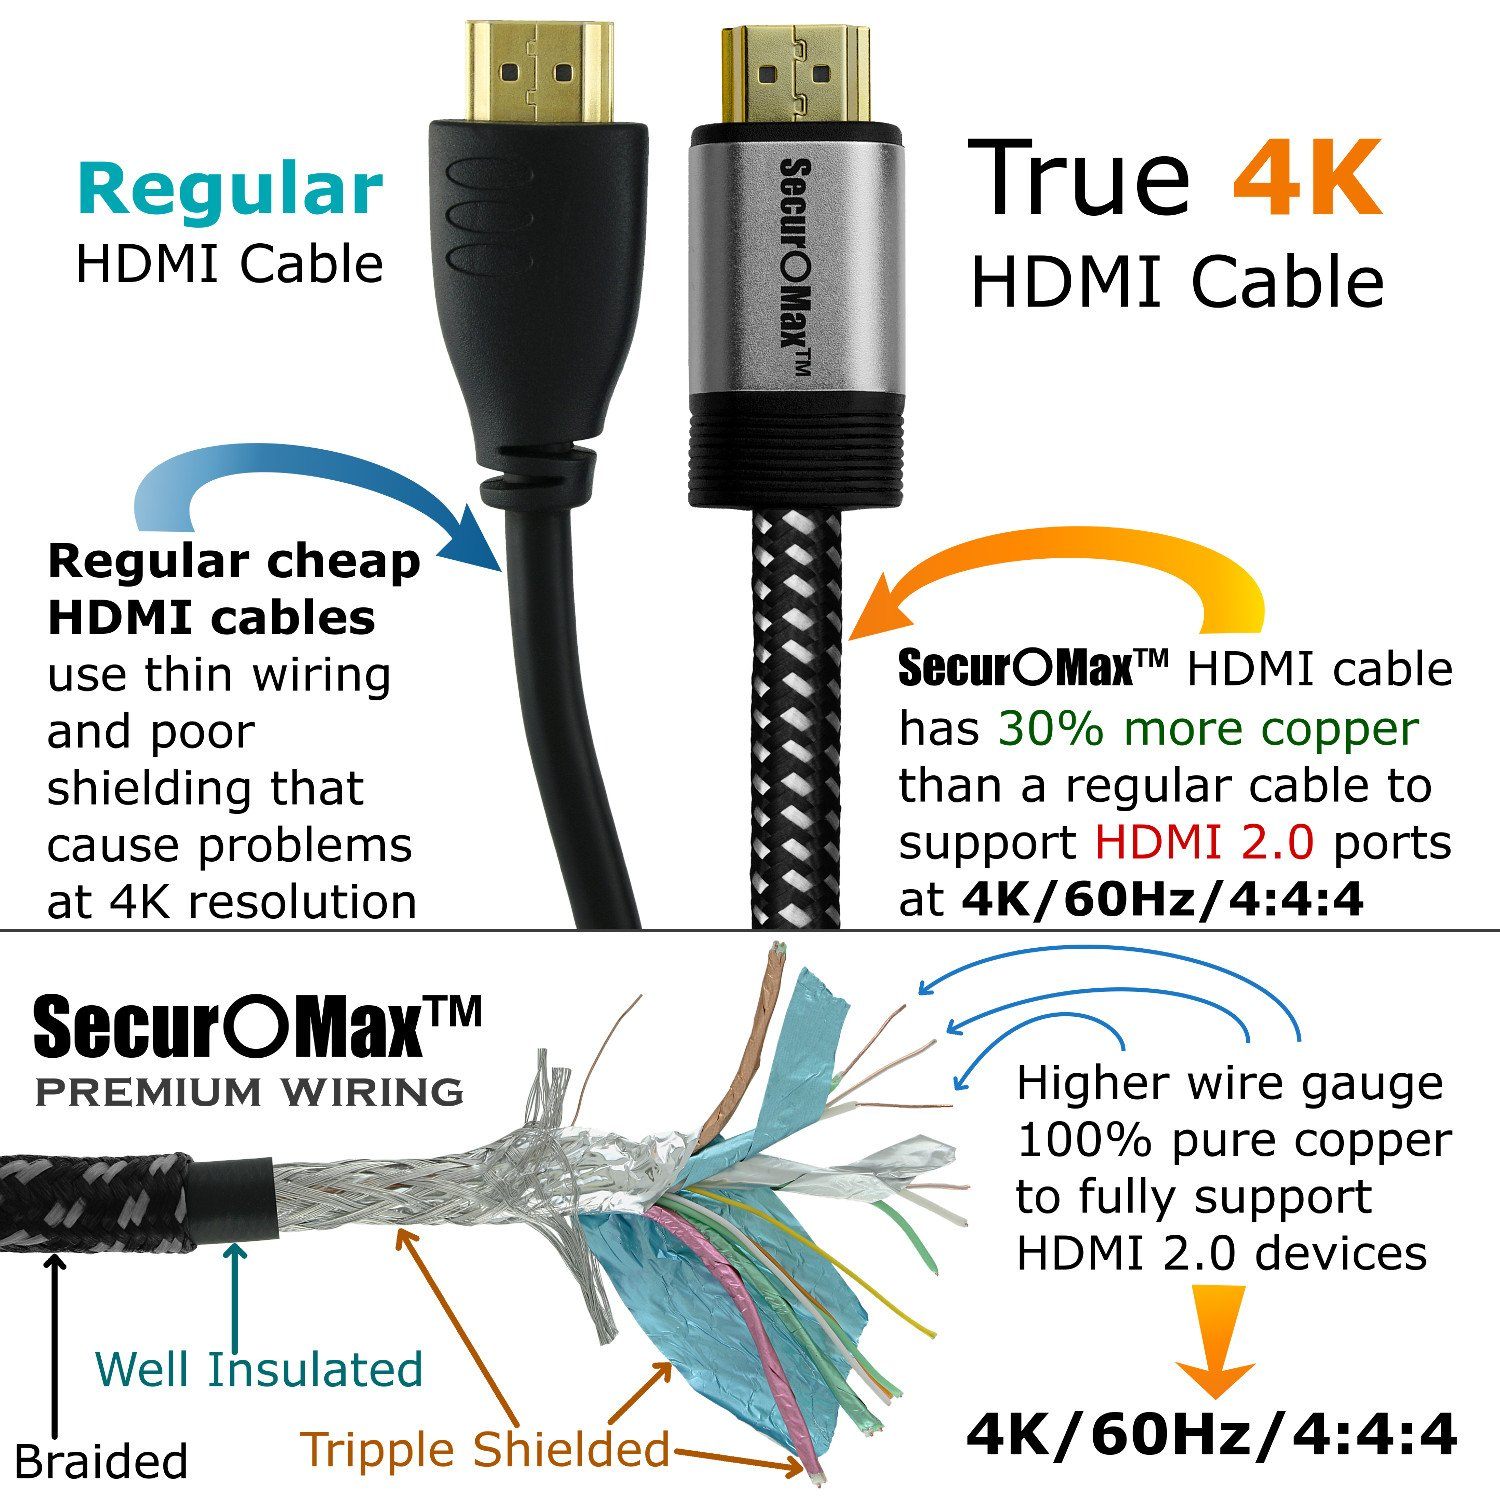 HDMI Cable 15 FT - Braided Cord - 4K HDMI 2.0 Ready - High Speed - Gold Plated Connectors - Ethernet / Audio Return Channel - Video 4K UHD 2160p, HD 1080p, 3D - Xbox PlayStation PS3 PS4 PC Apple TV